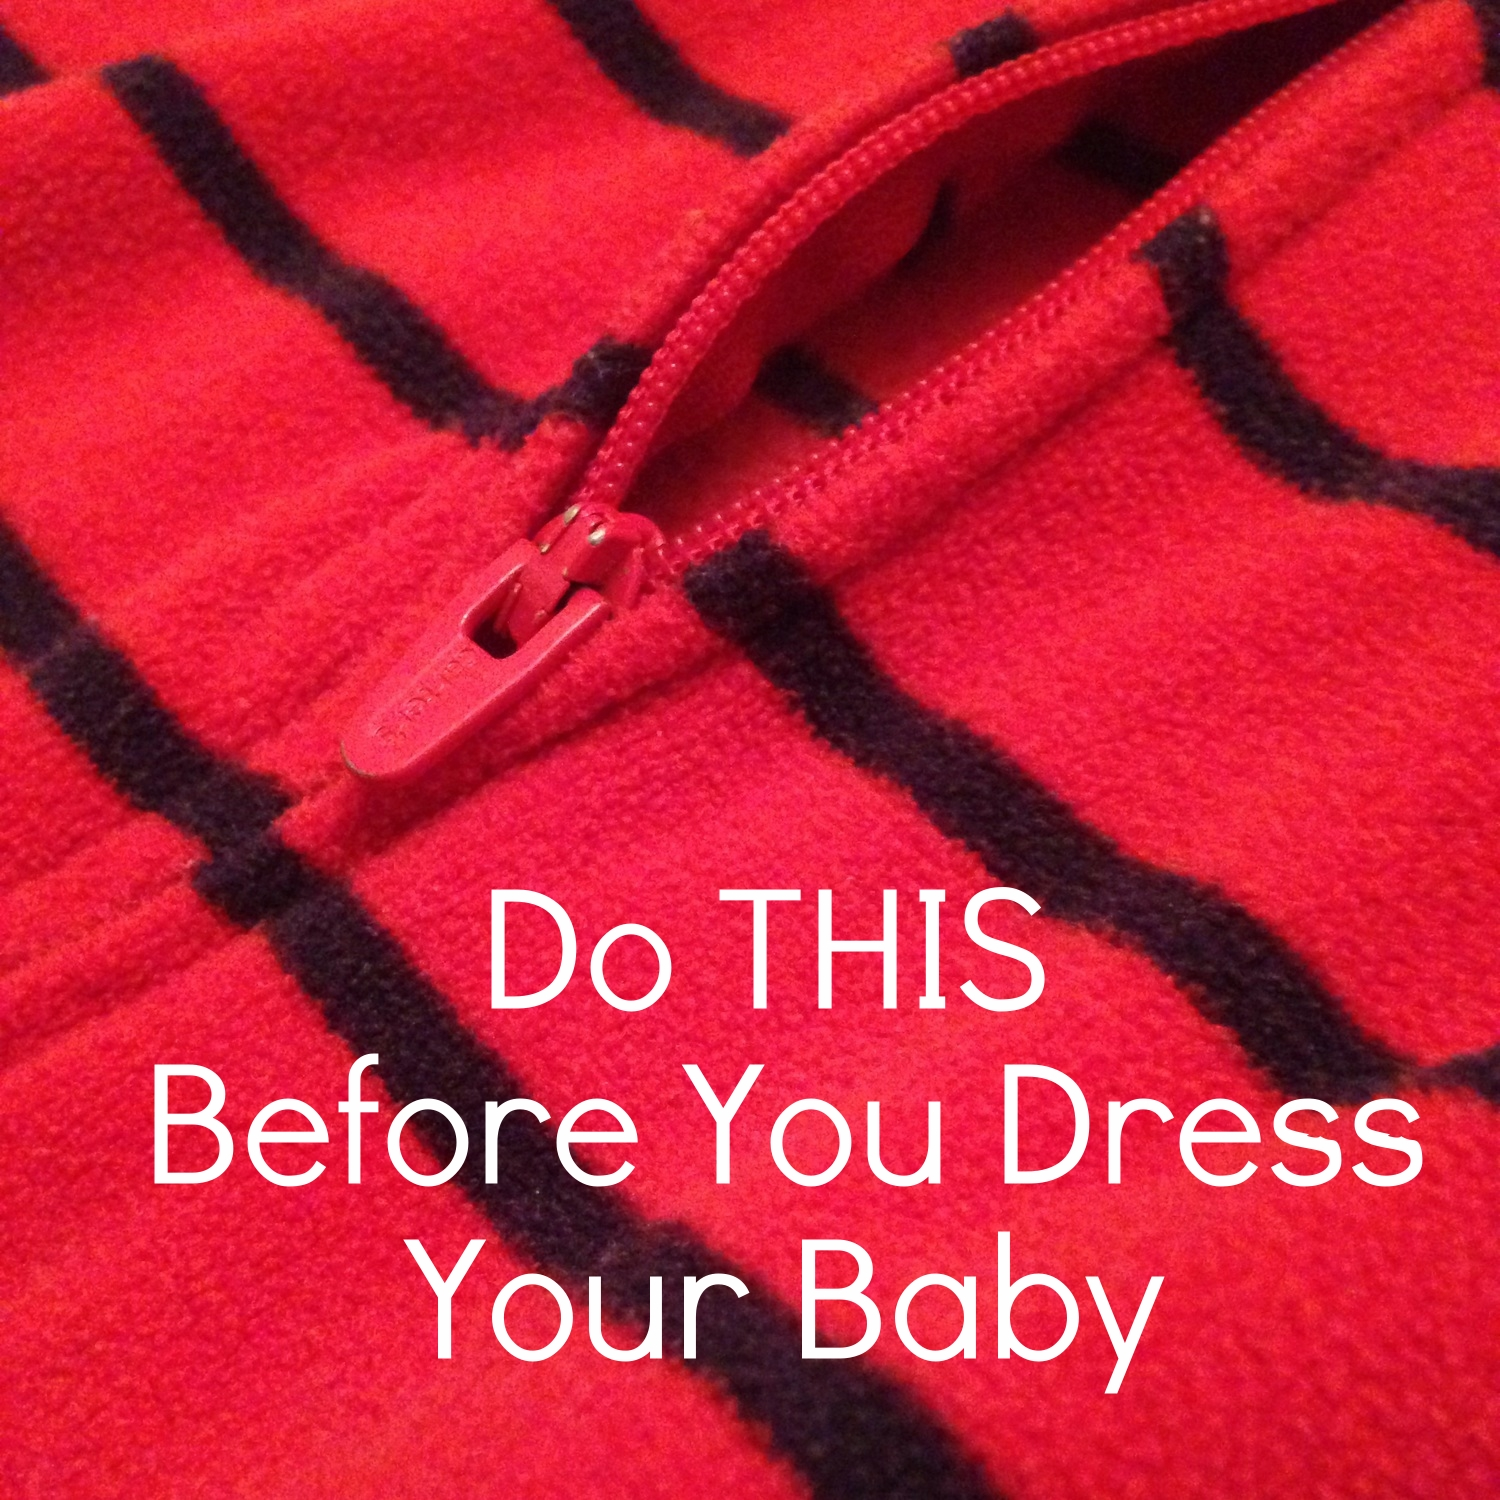 Always do THIS Before you Dress your Baby